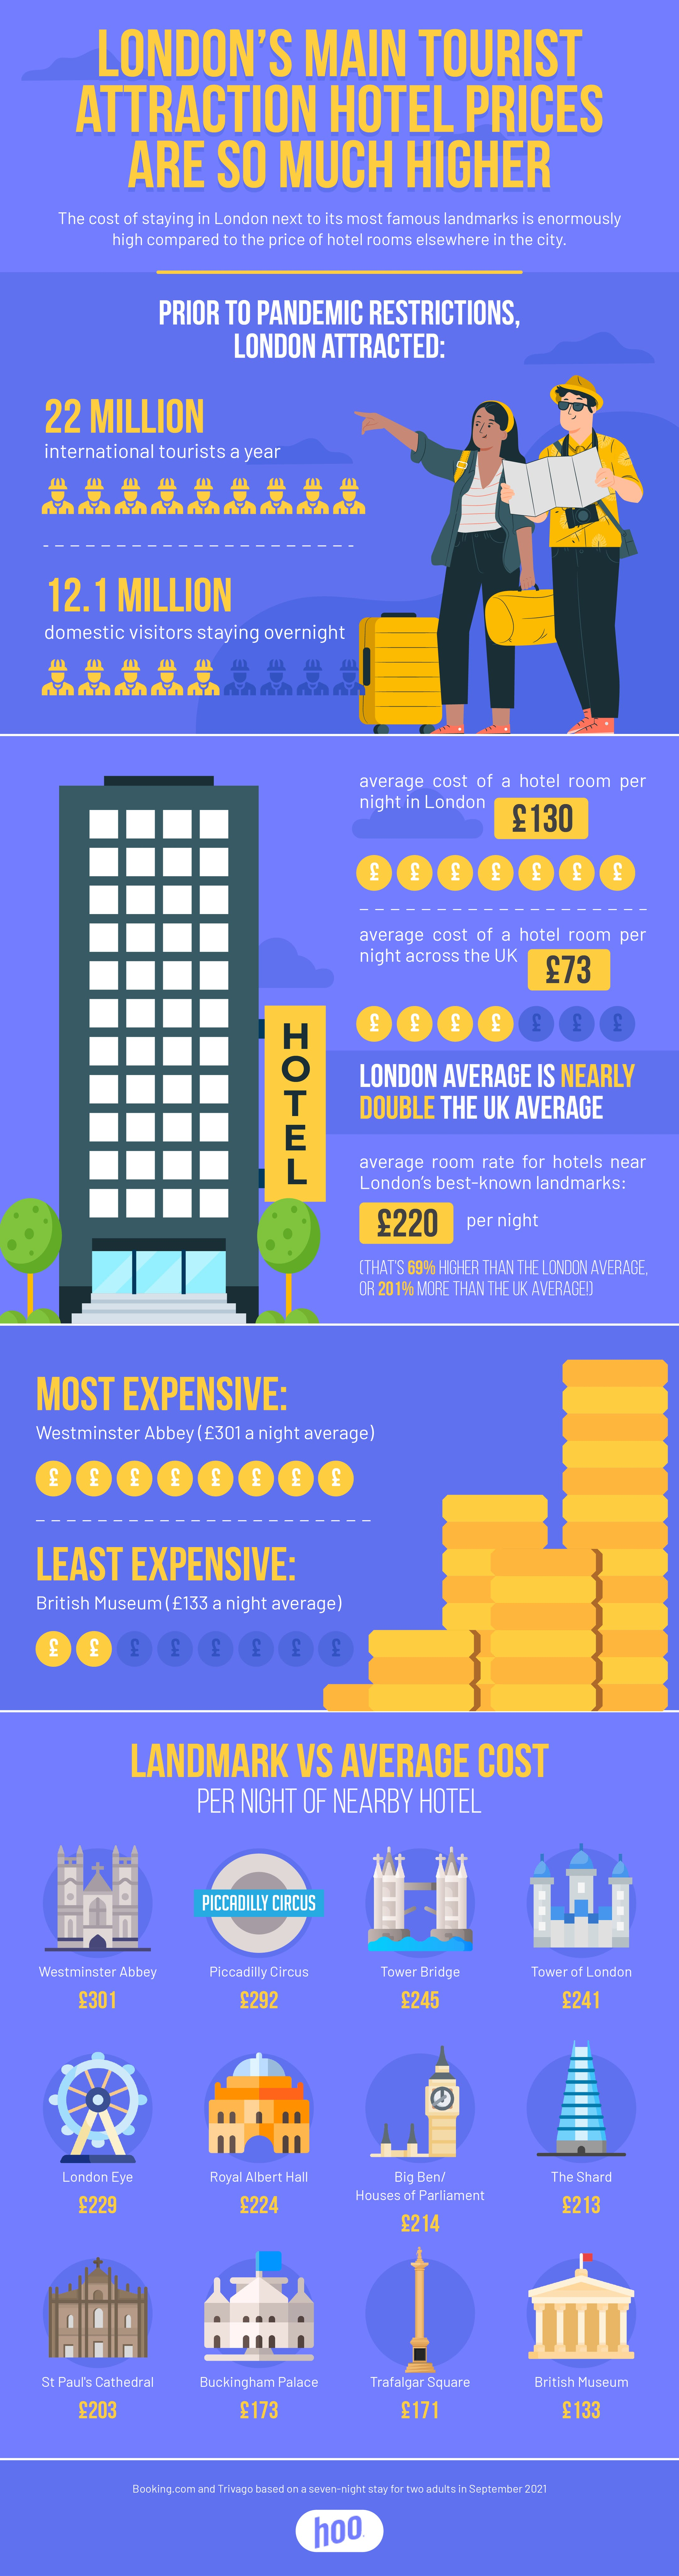 London hotel prices near main tourist attractions